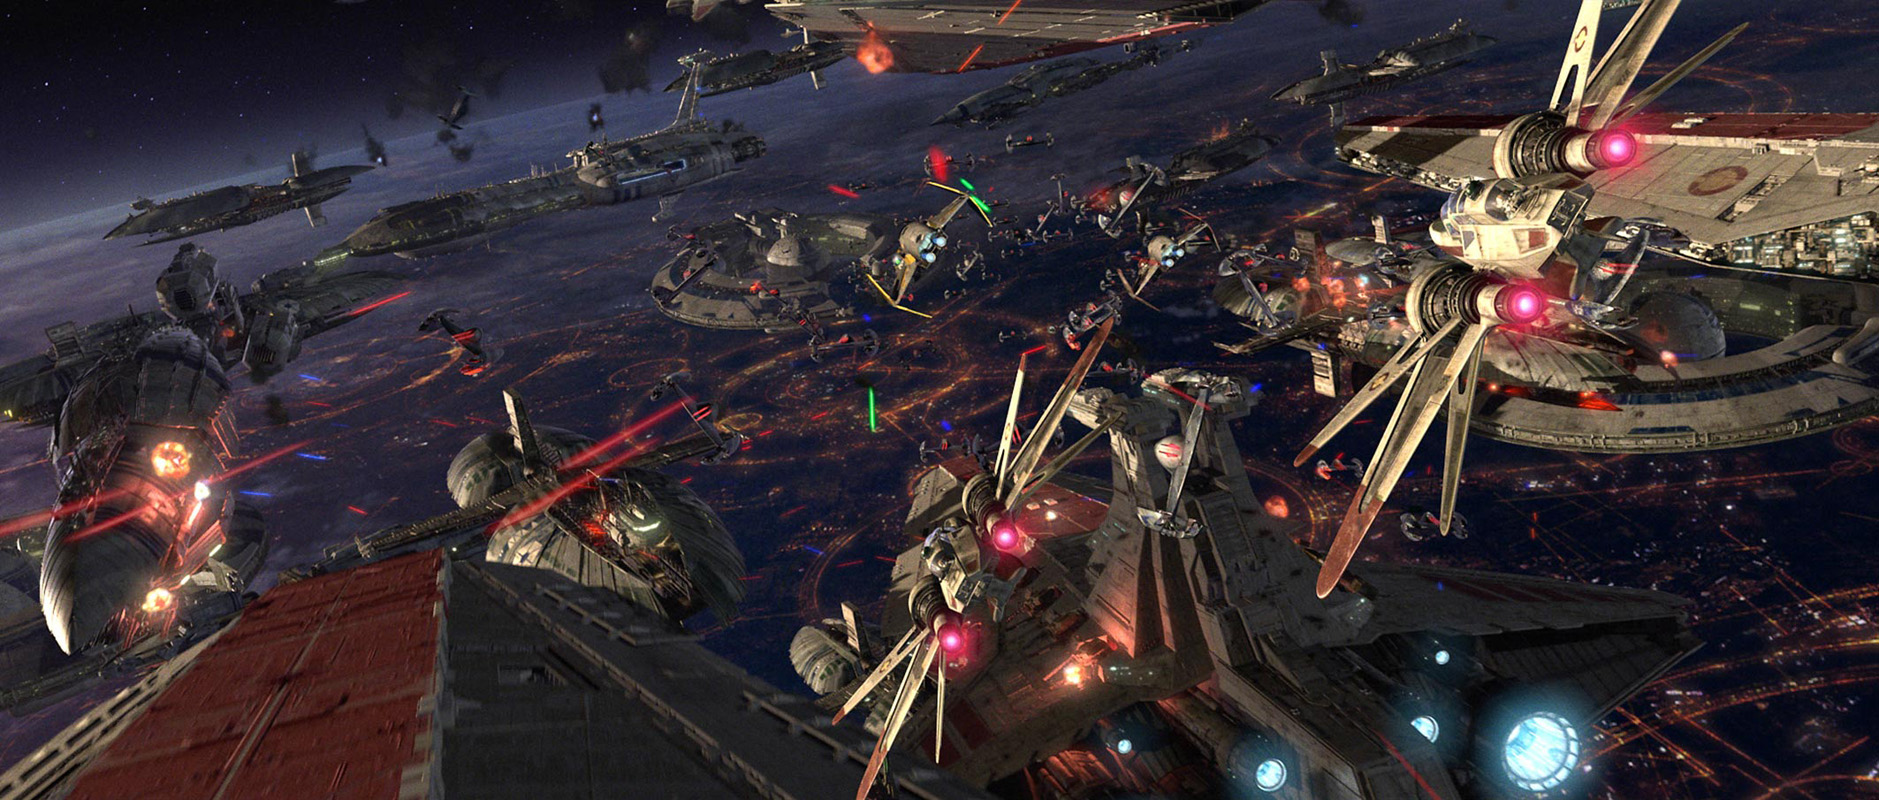 Battle Of Coruscant Wookieepedia Fandom